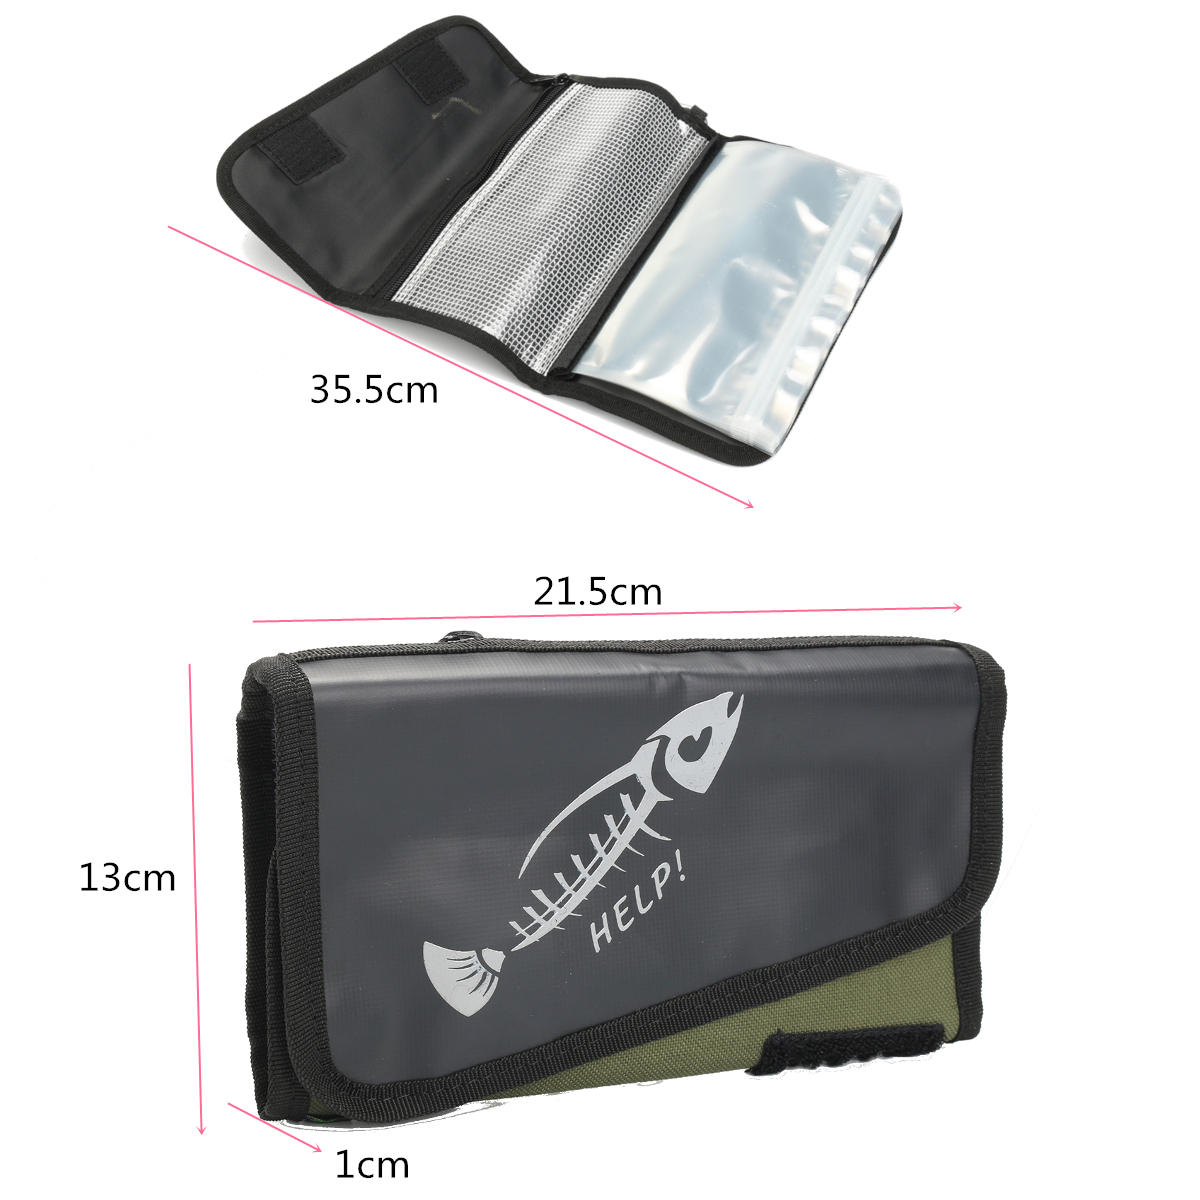 ZANLURE Fishing Spoon Lure Tackle Bag Portable Waterproof Wallet Spinner Storage Bag